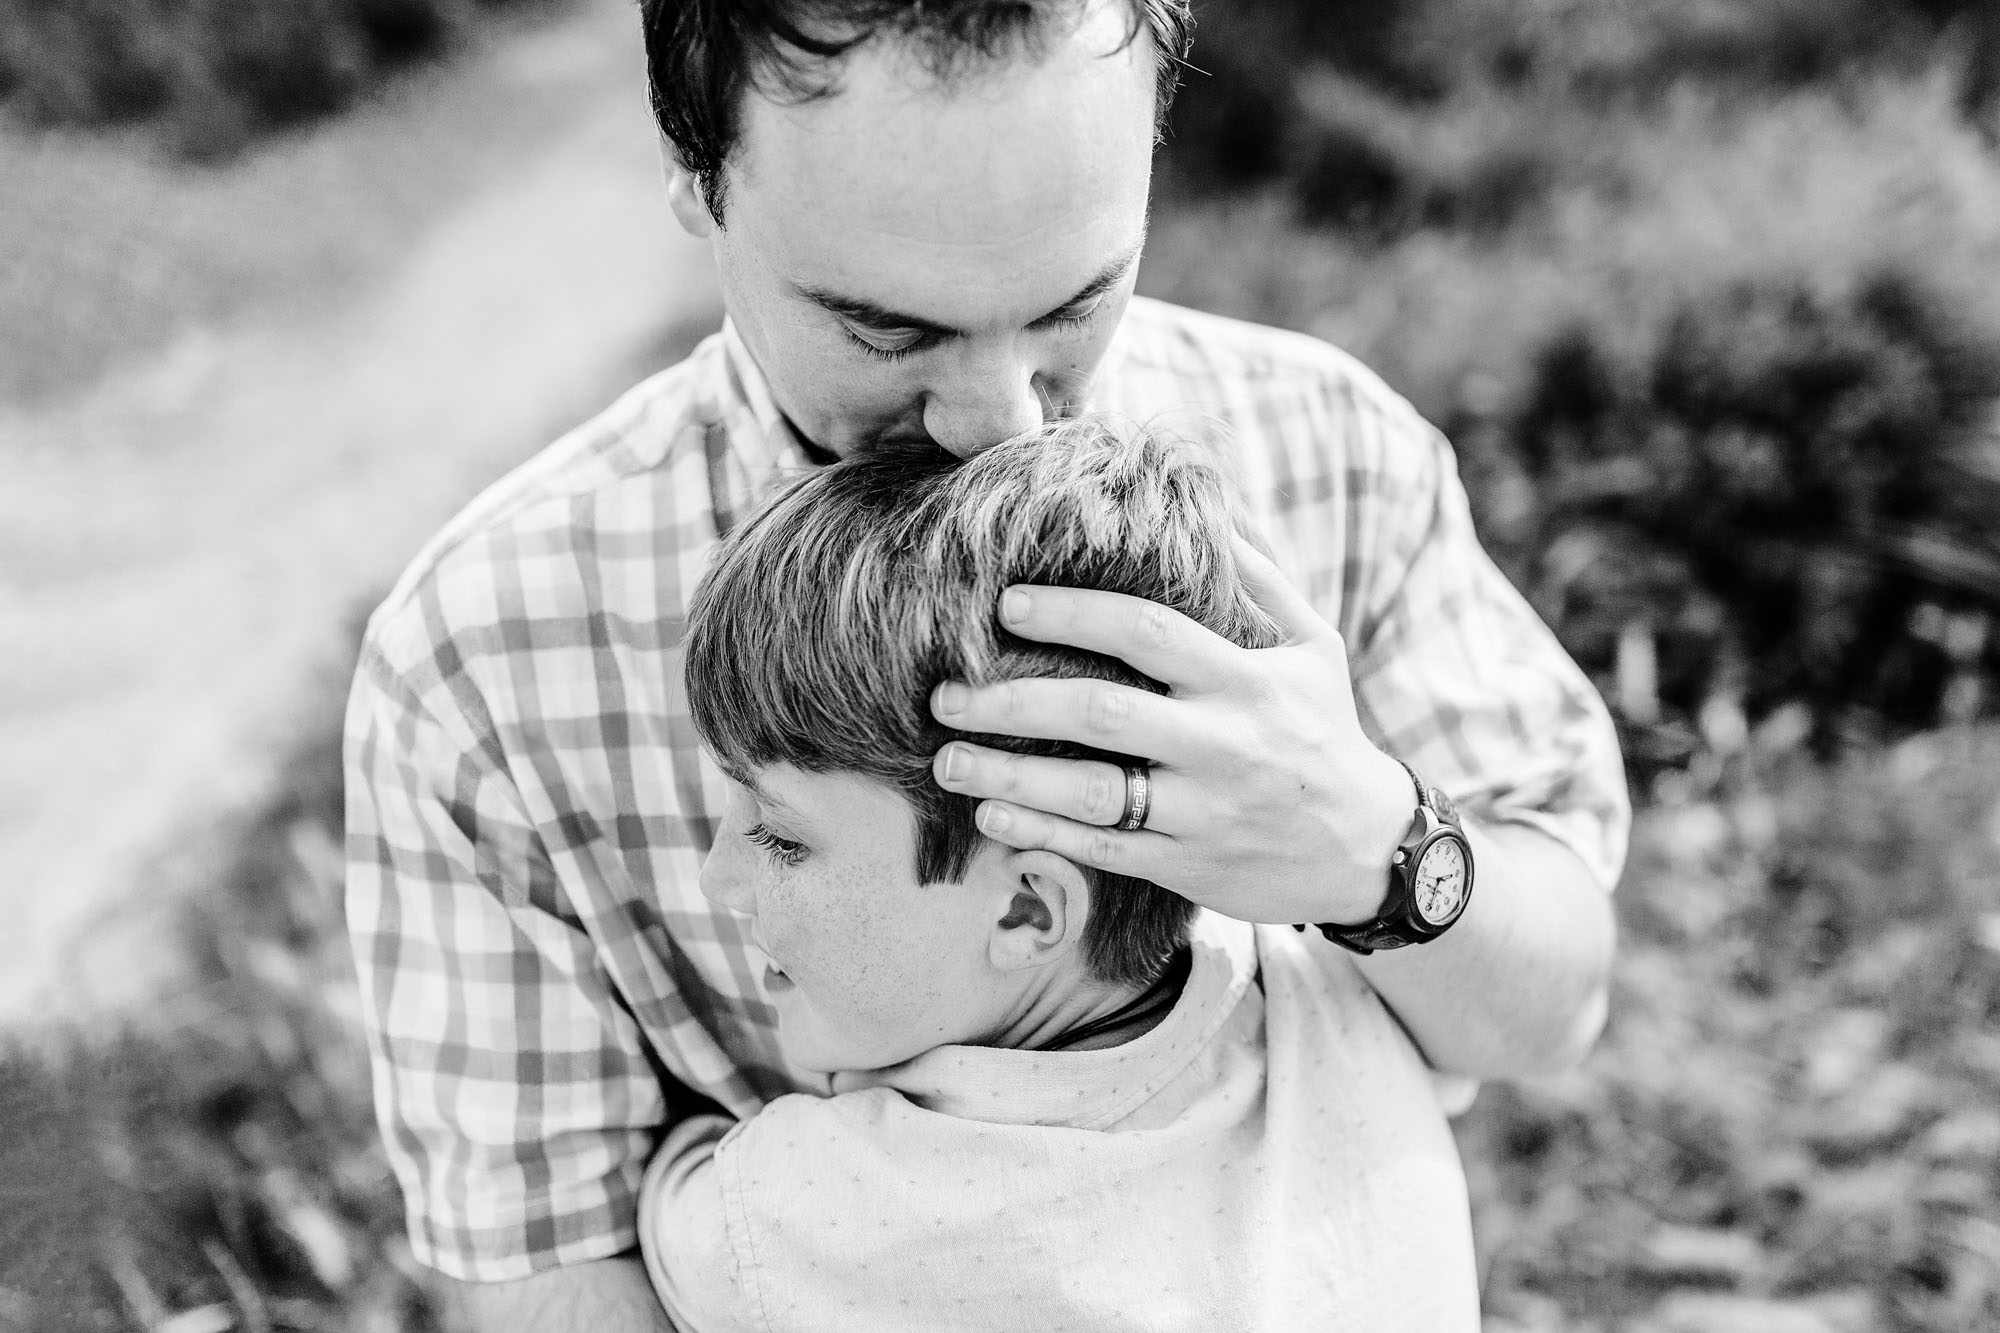 A father kisses his son and hugs him with love during a lifestyle family photo session with Amy Wright, a photographer based out of Roseville, Rocklin, and Sacramento, California.